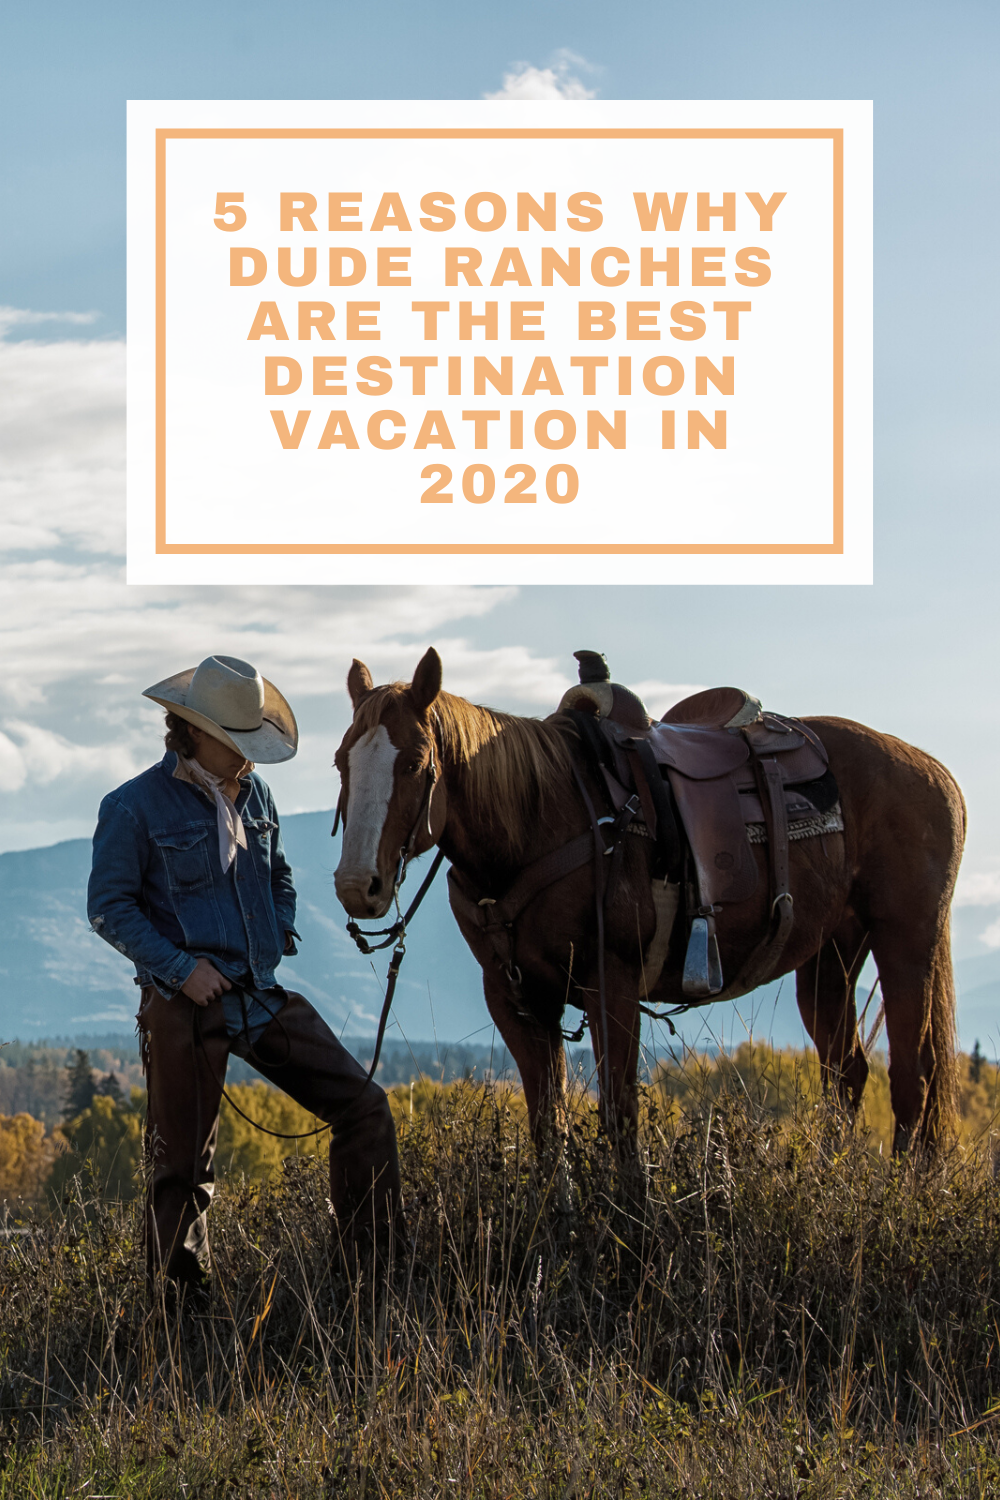 5 Reasons Why Dude Ranches are the Best Destination Vacation in 2020